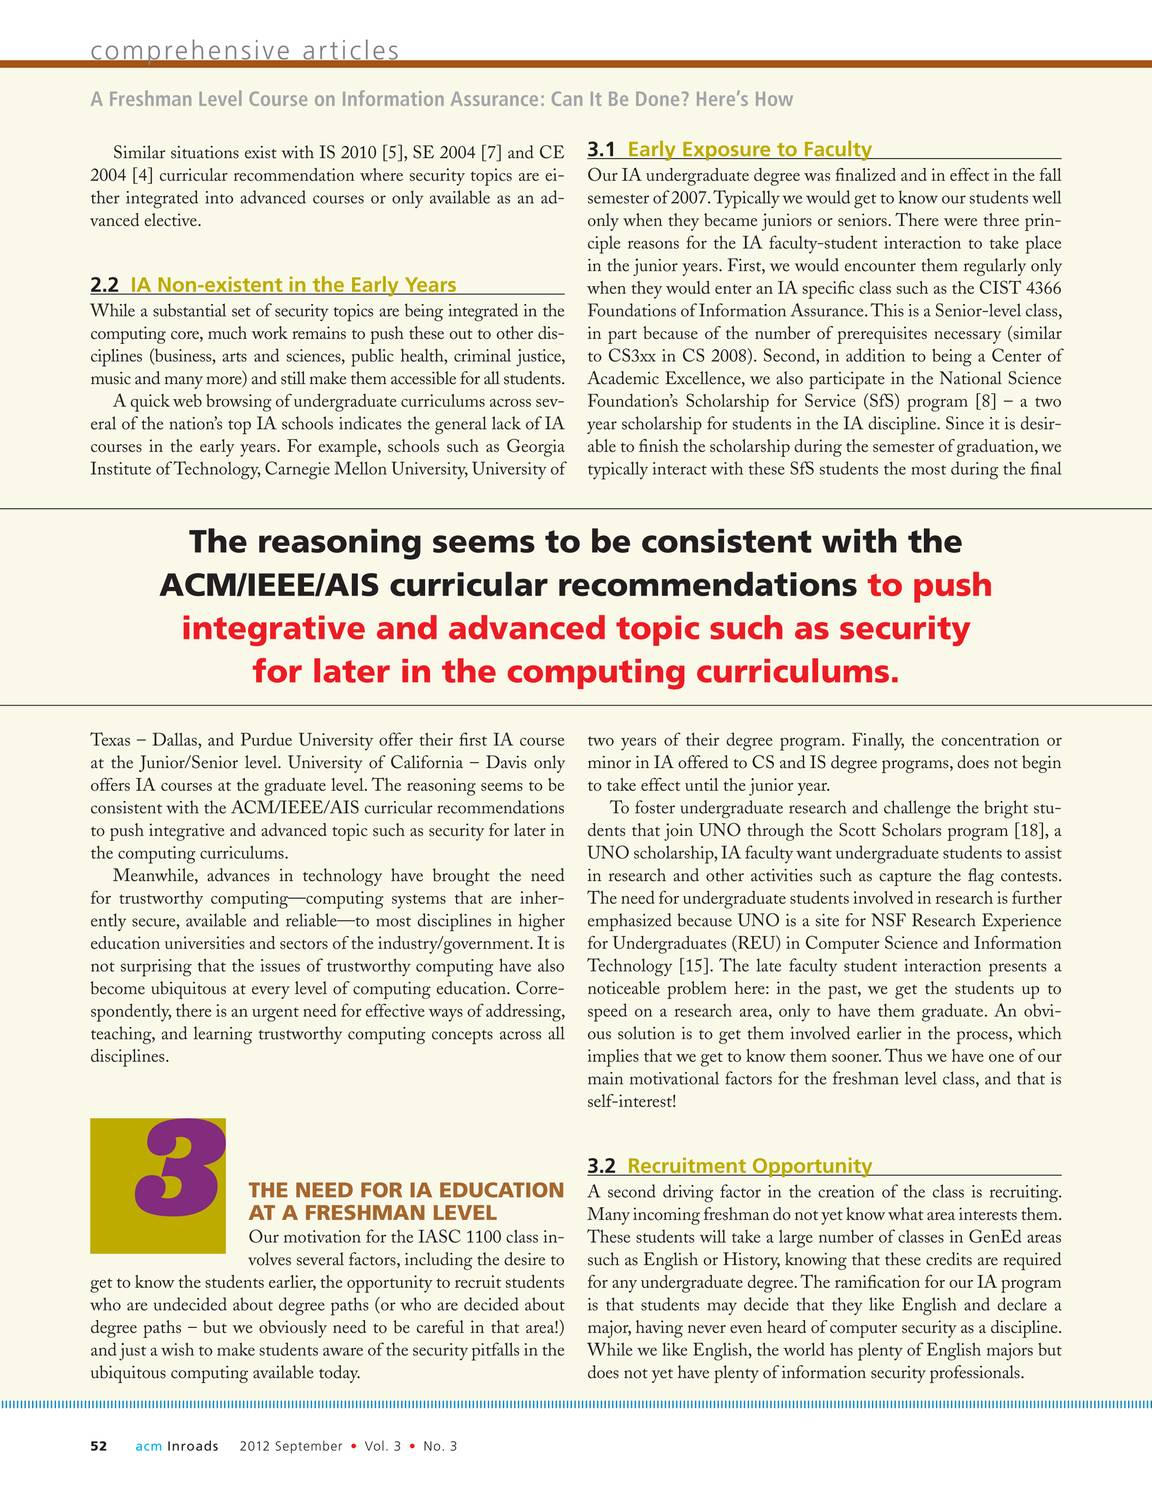 Inroads - September 2012 - page 53